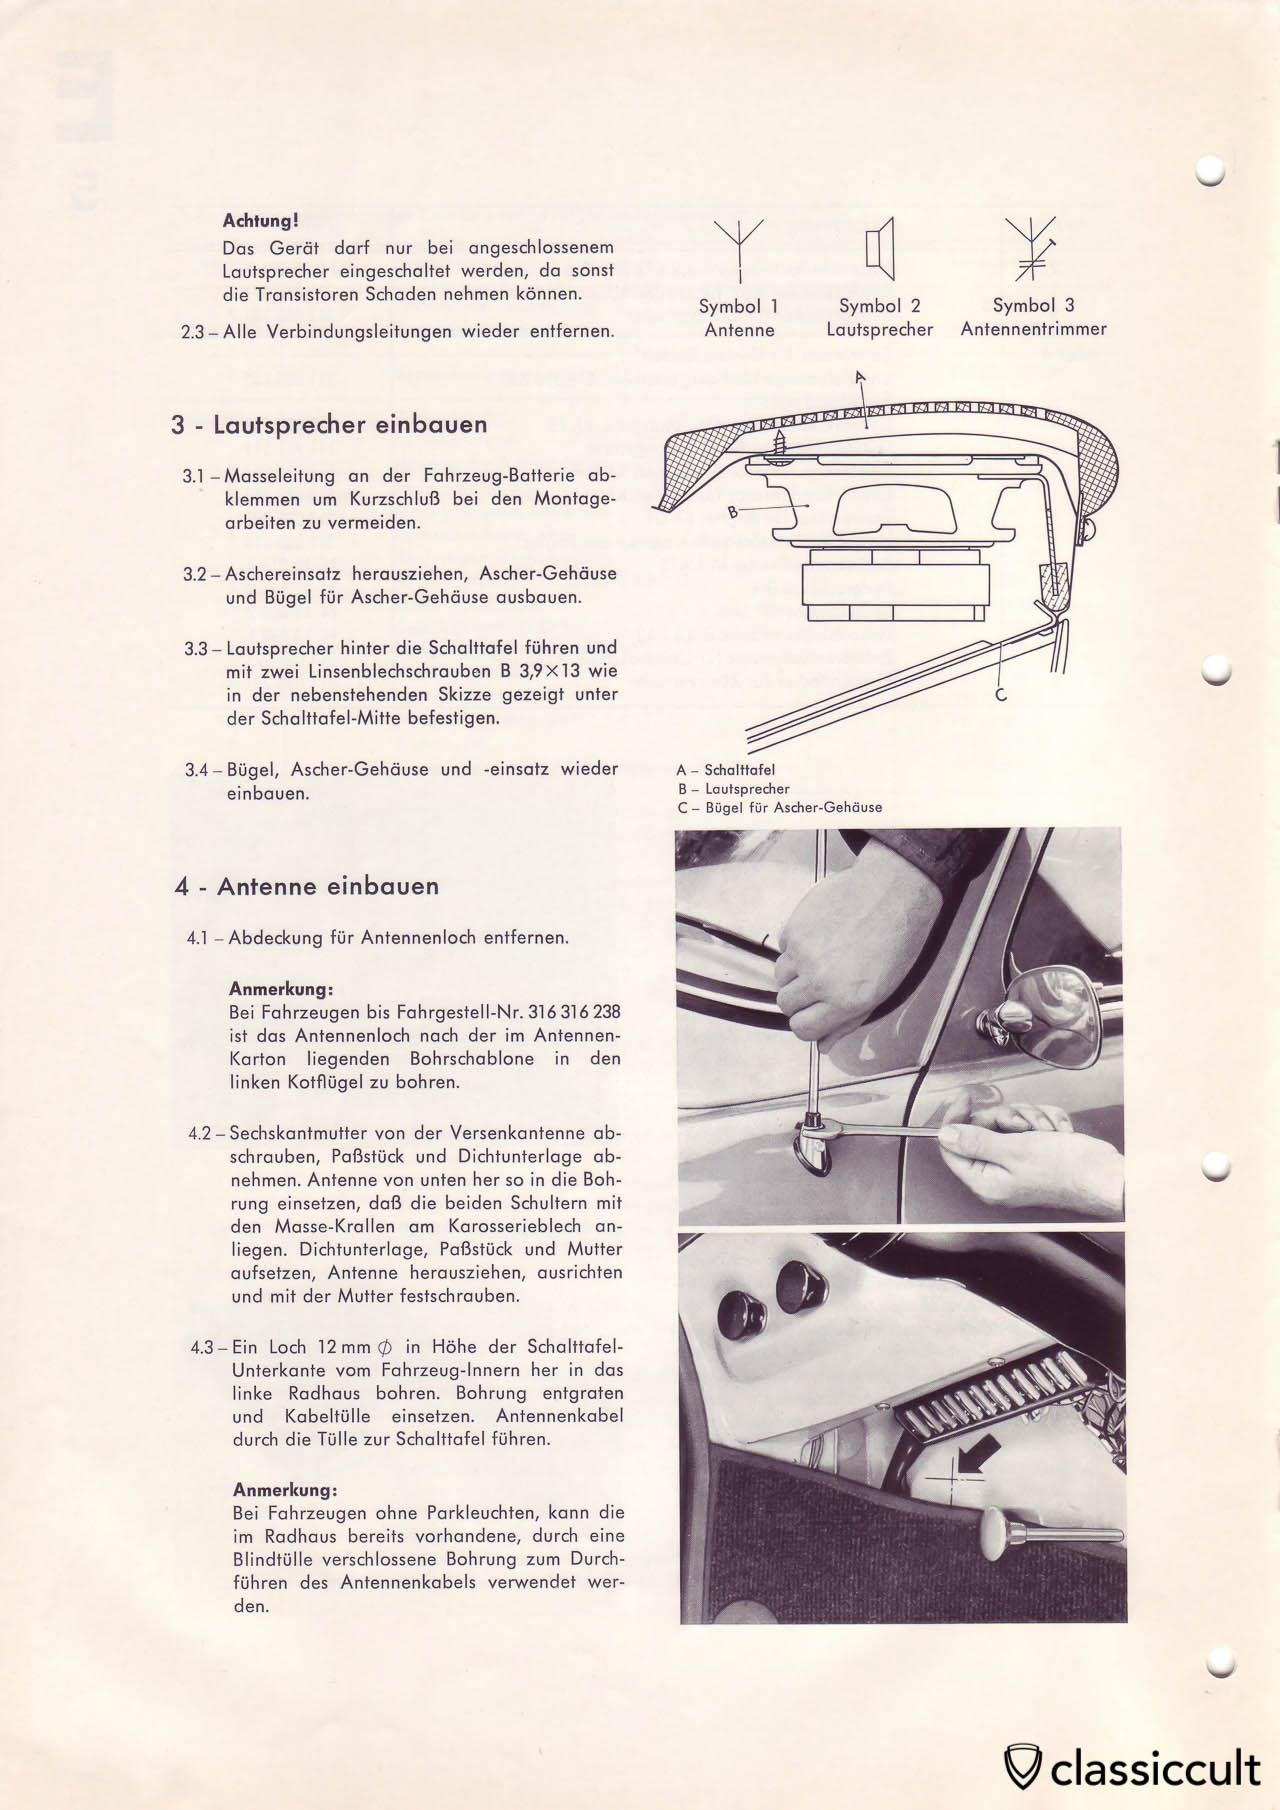 VW Type 3 Blaupunkt speaker and antenna mounting instructions.